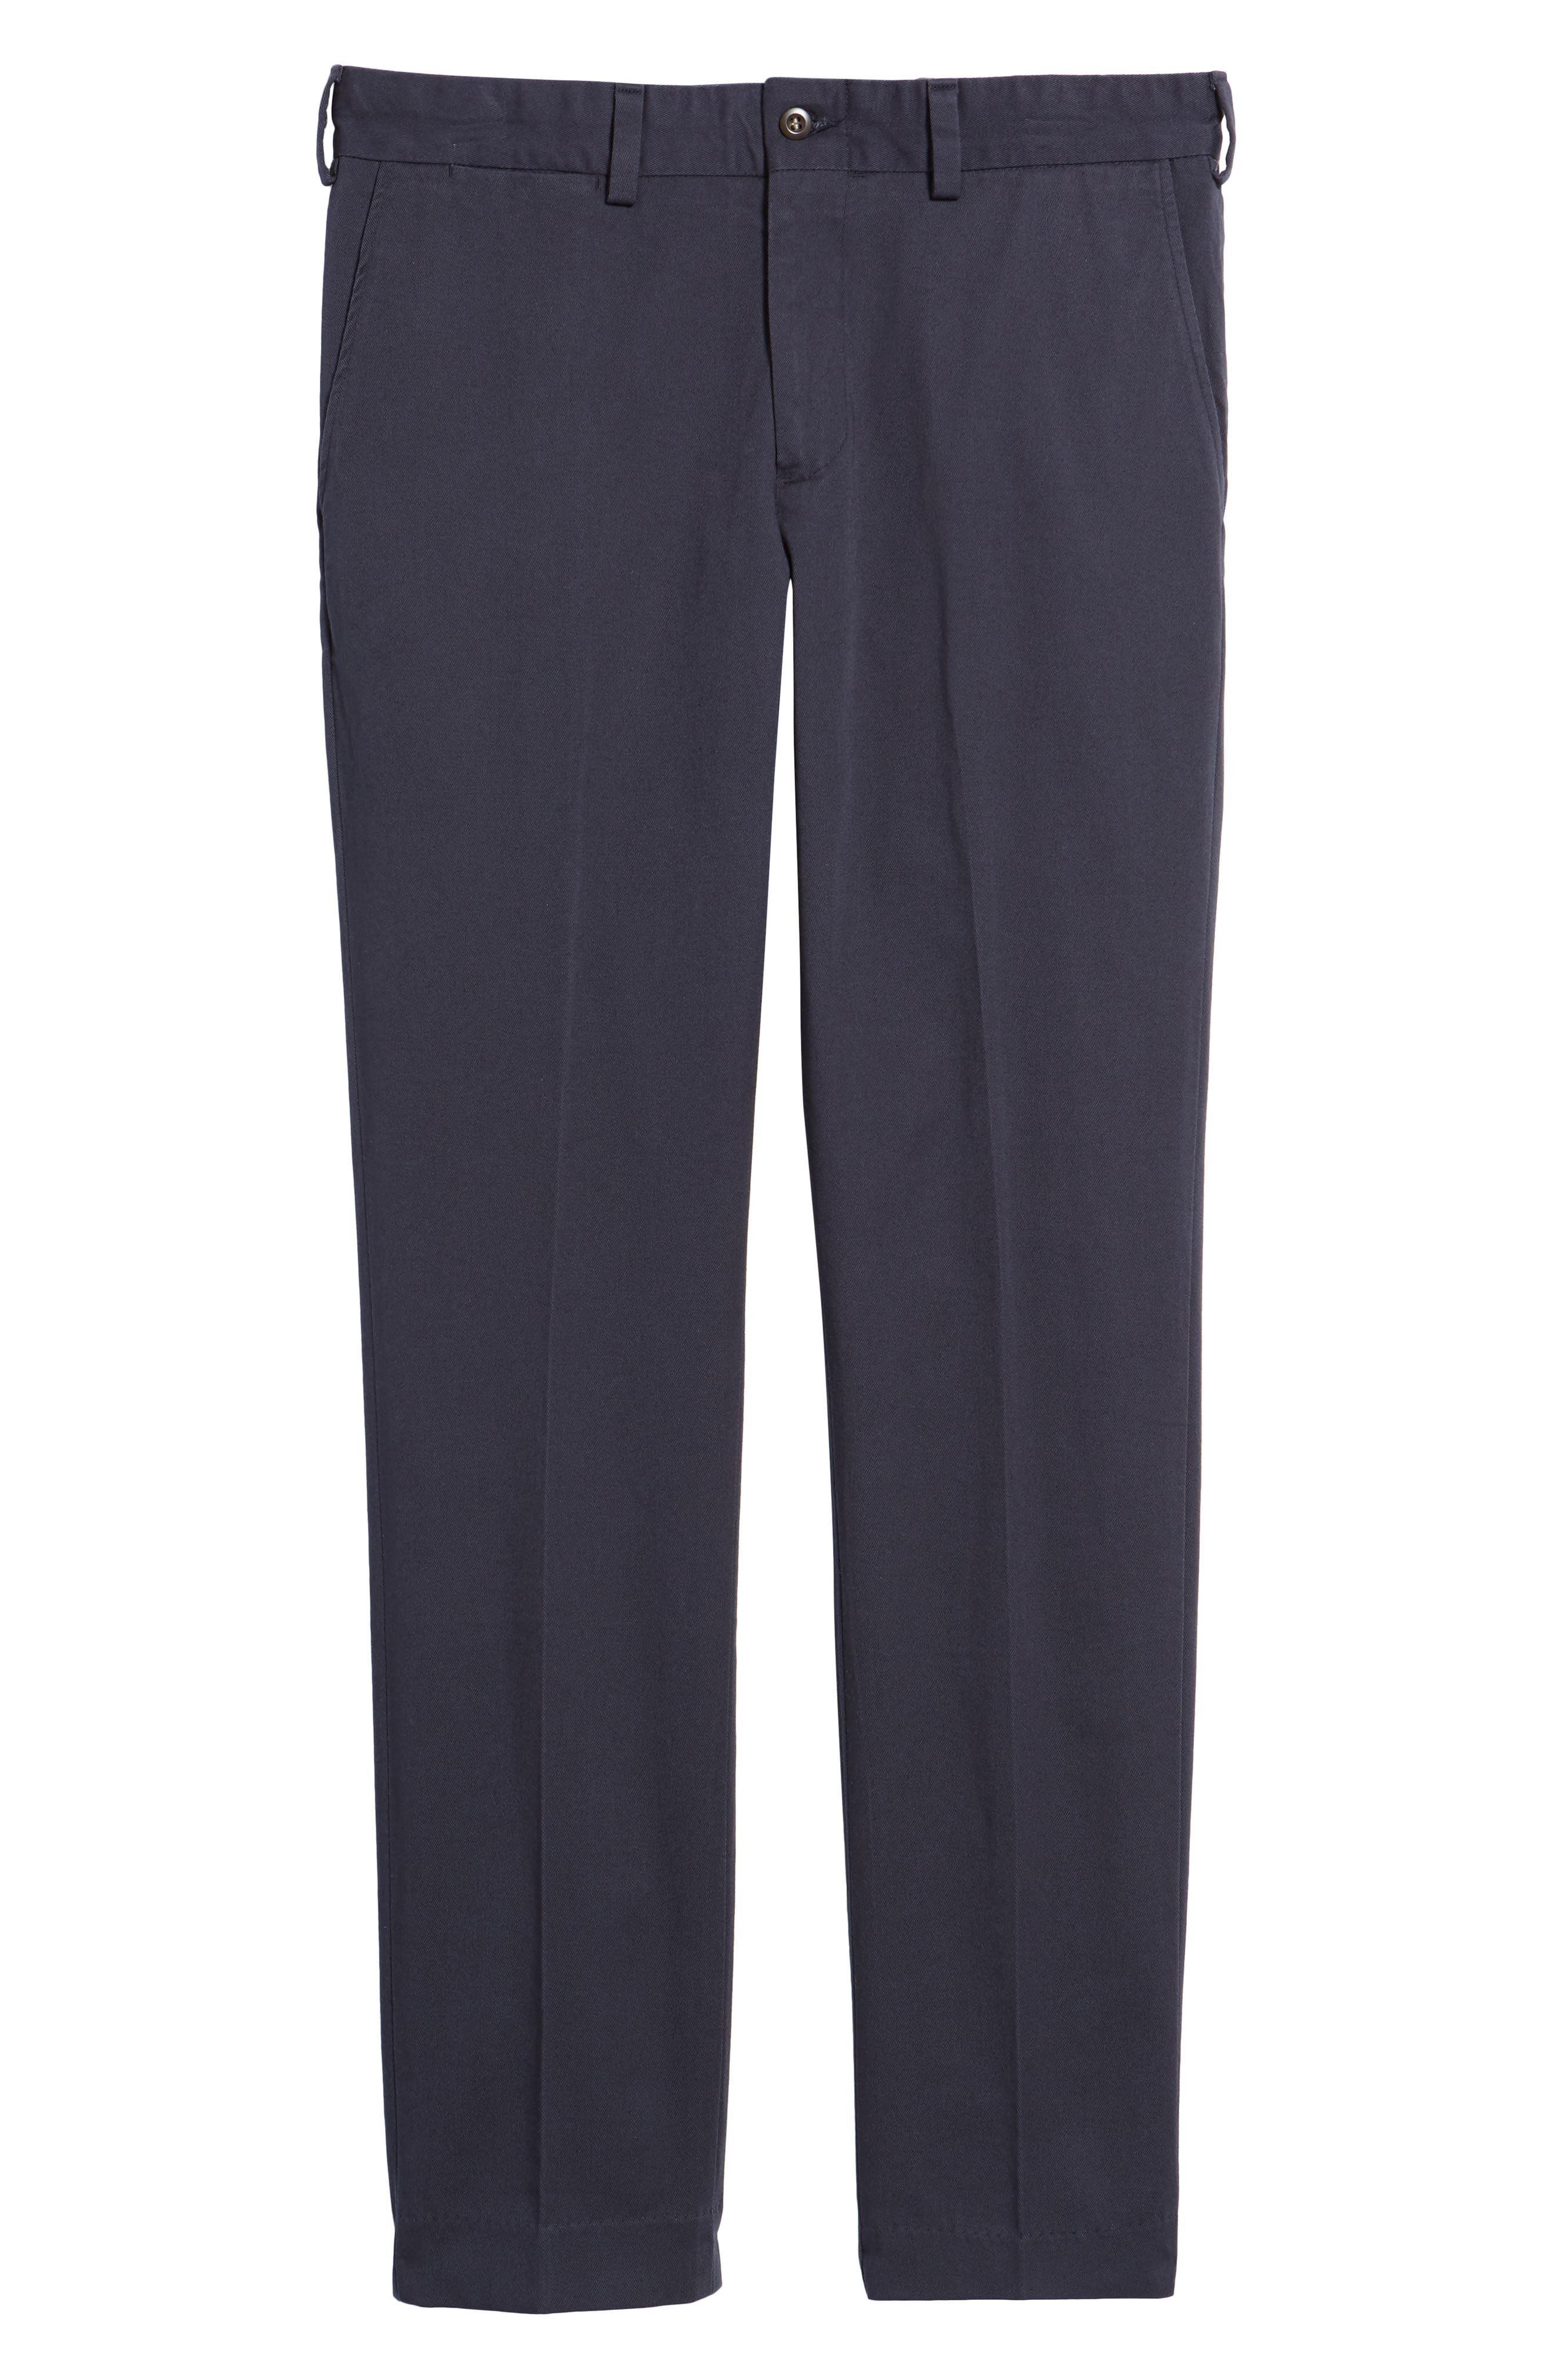 Slim Fit Original Twill Pants,                             Alternate thumbnail 6, color,                             Navy